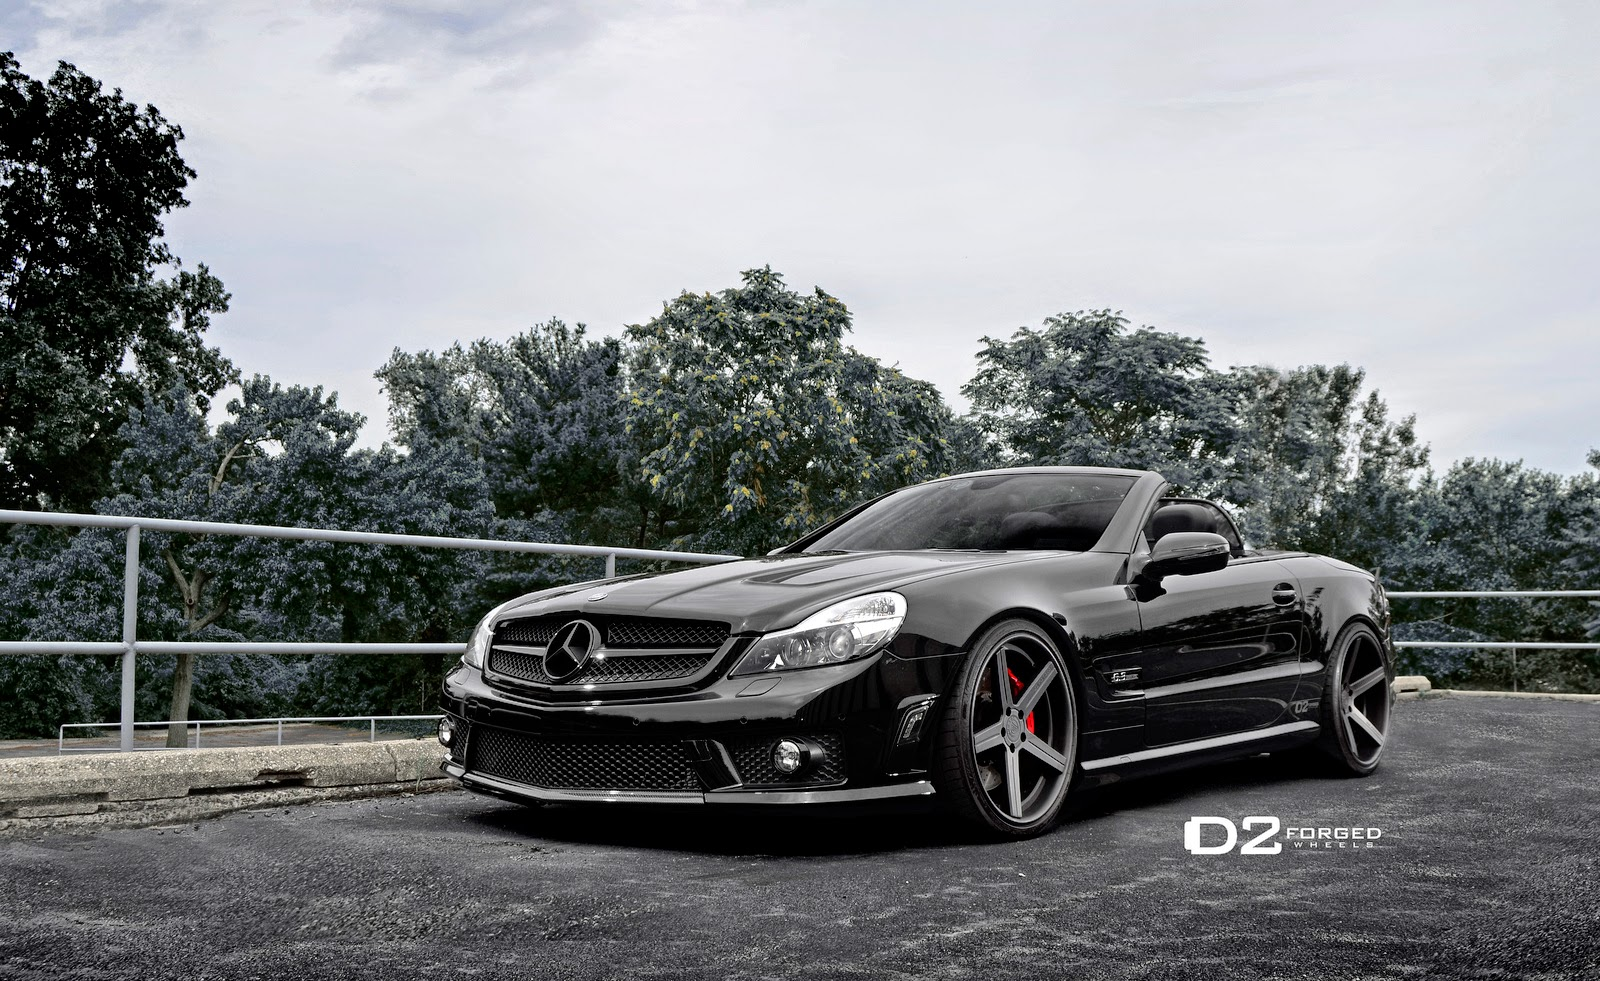 Mercedes benz sl63 amg on d2forged cv2 benztuning for Mercedes benz amg sl63